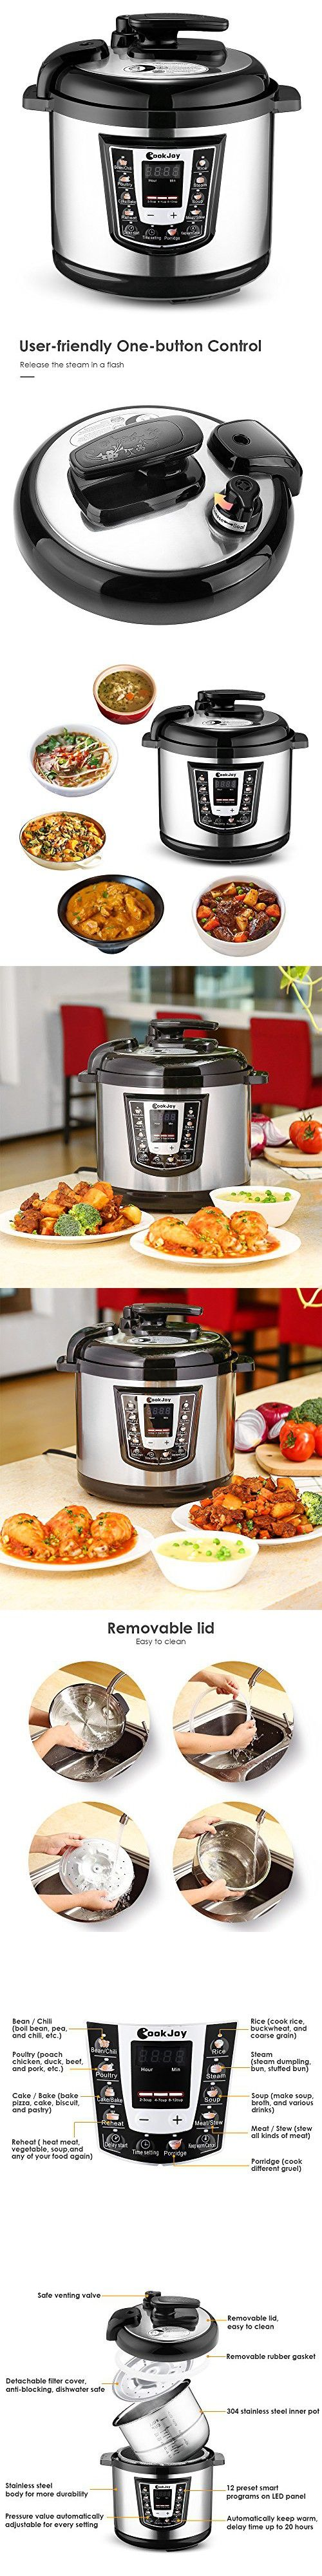 Electric Pressure Cooker 6 Litre 8-in-1 Programmable Multi-Cooker